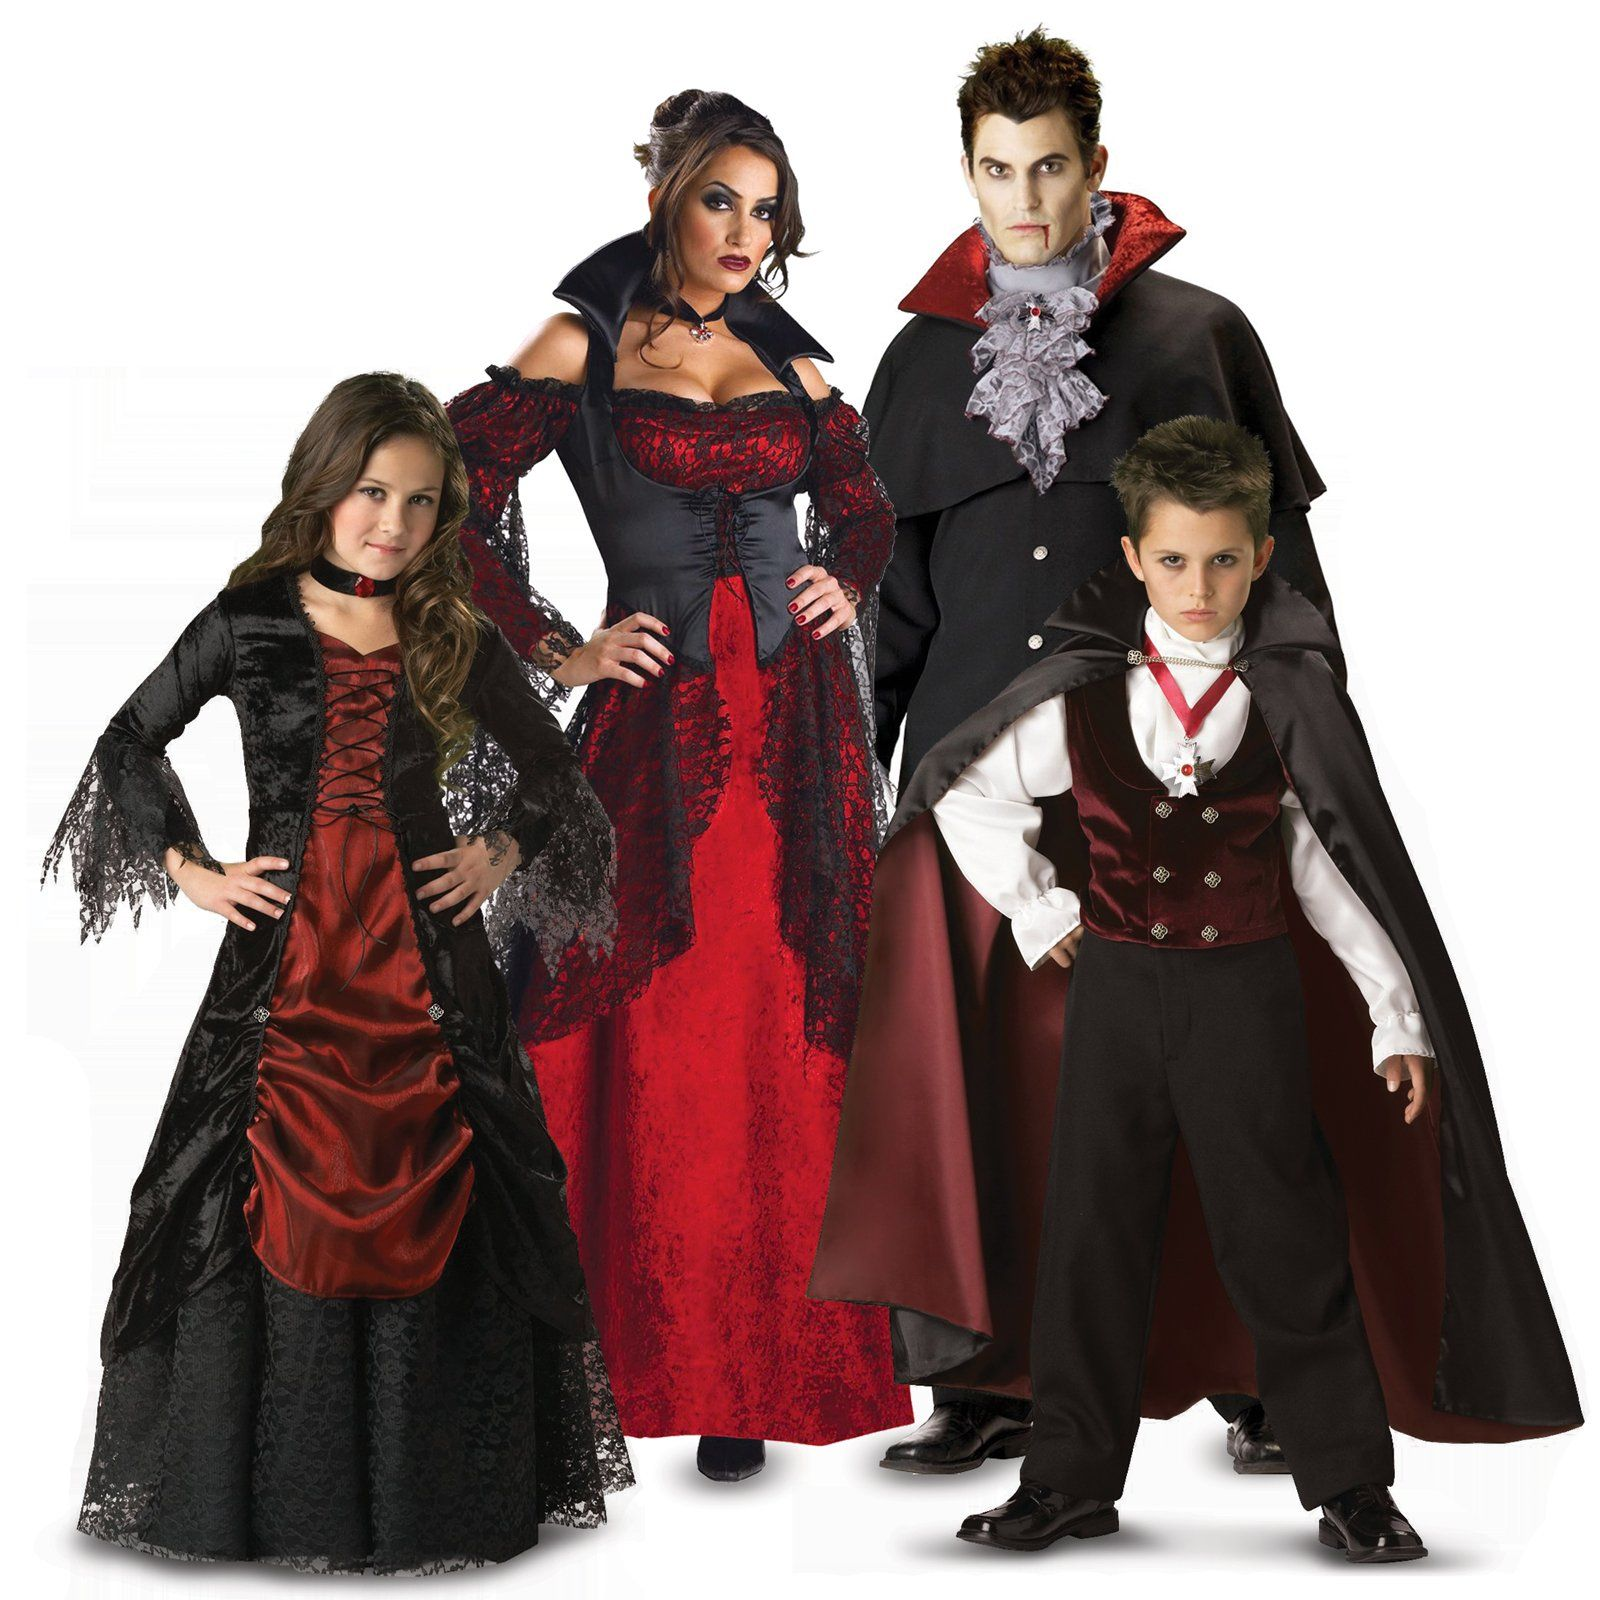 vampire family costumes events halloween costumes. Black Bedroom Furniture Sets. Home Design Ideas